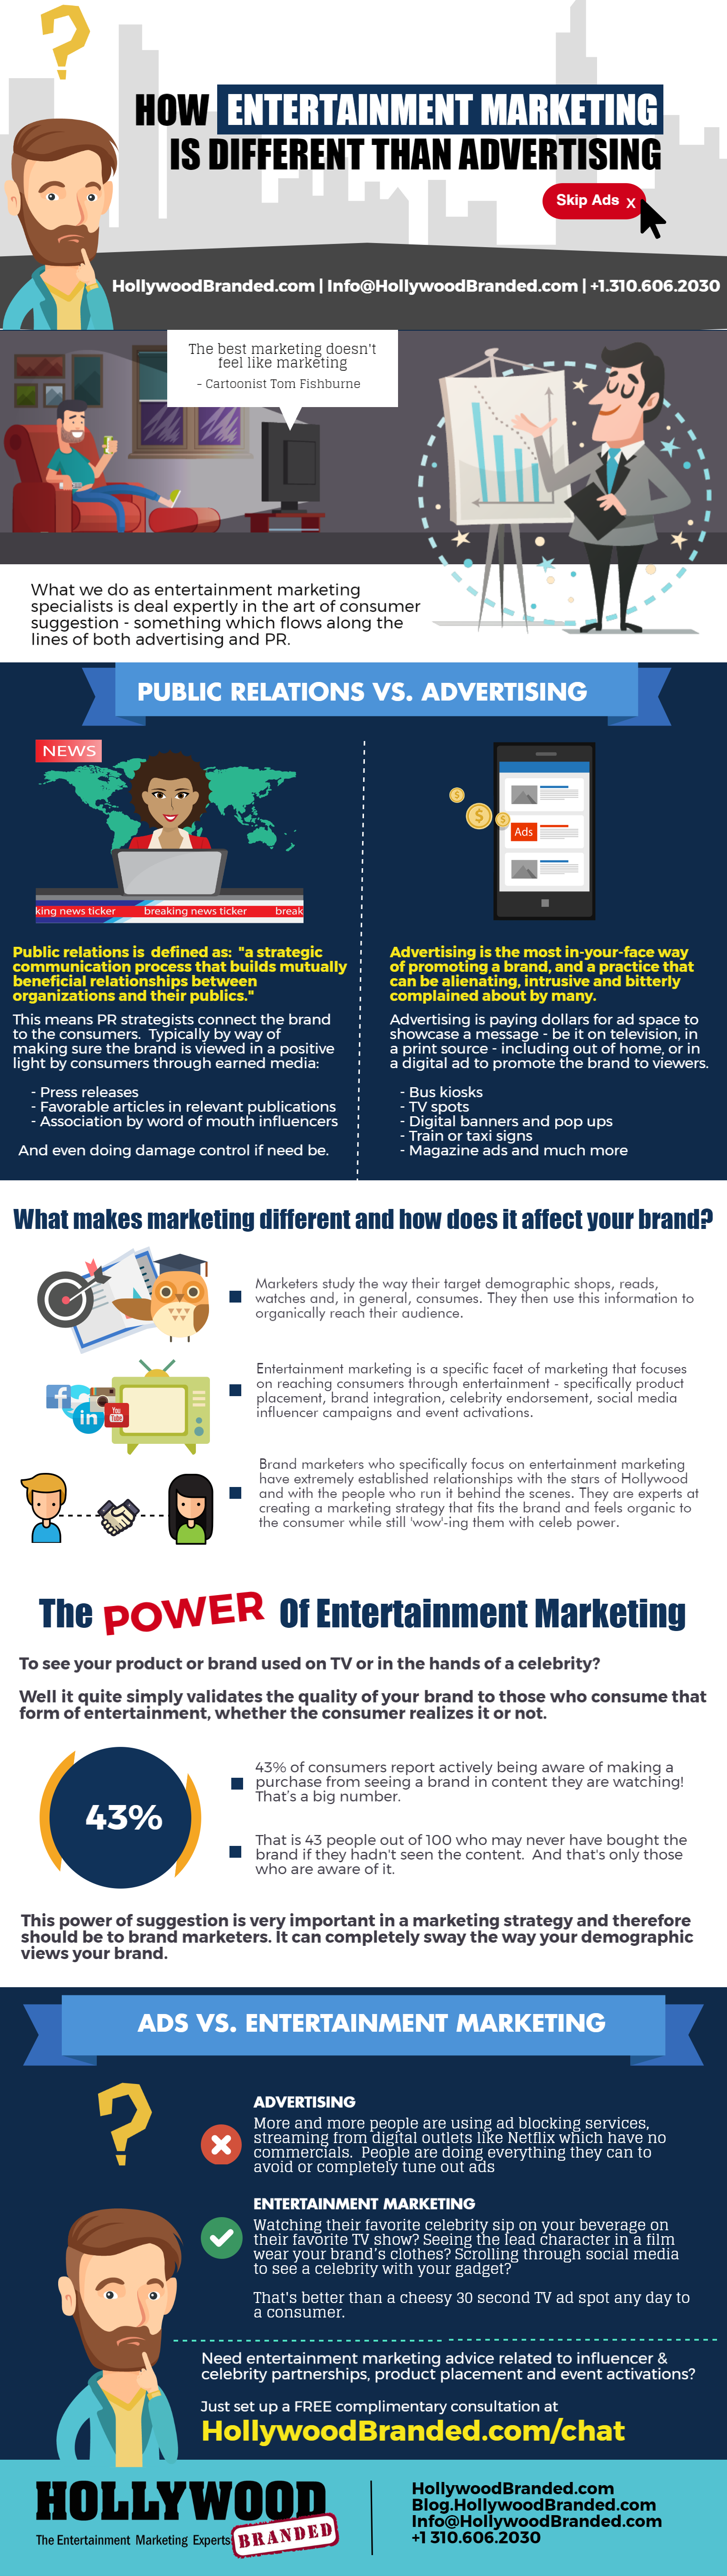 Eps 19 Entertainment Marketing Vs Advertising Infographic.png